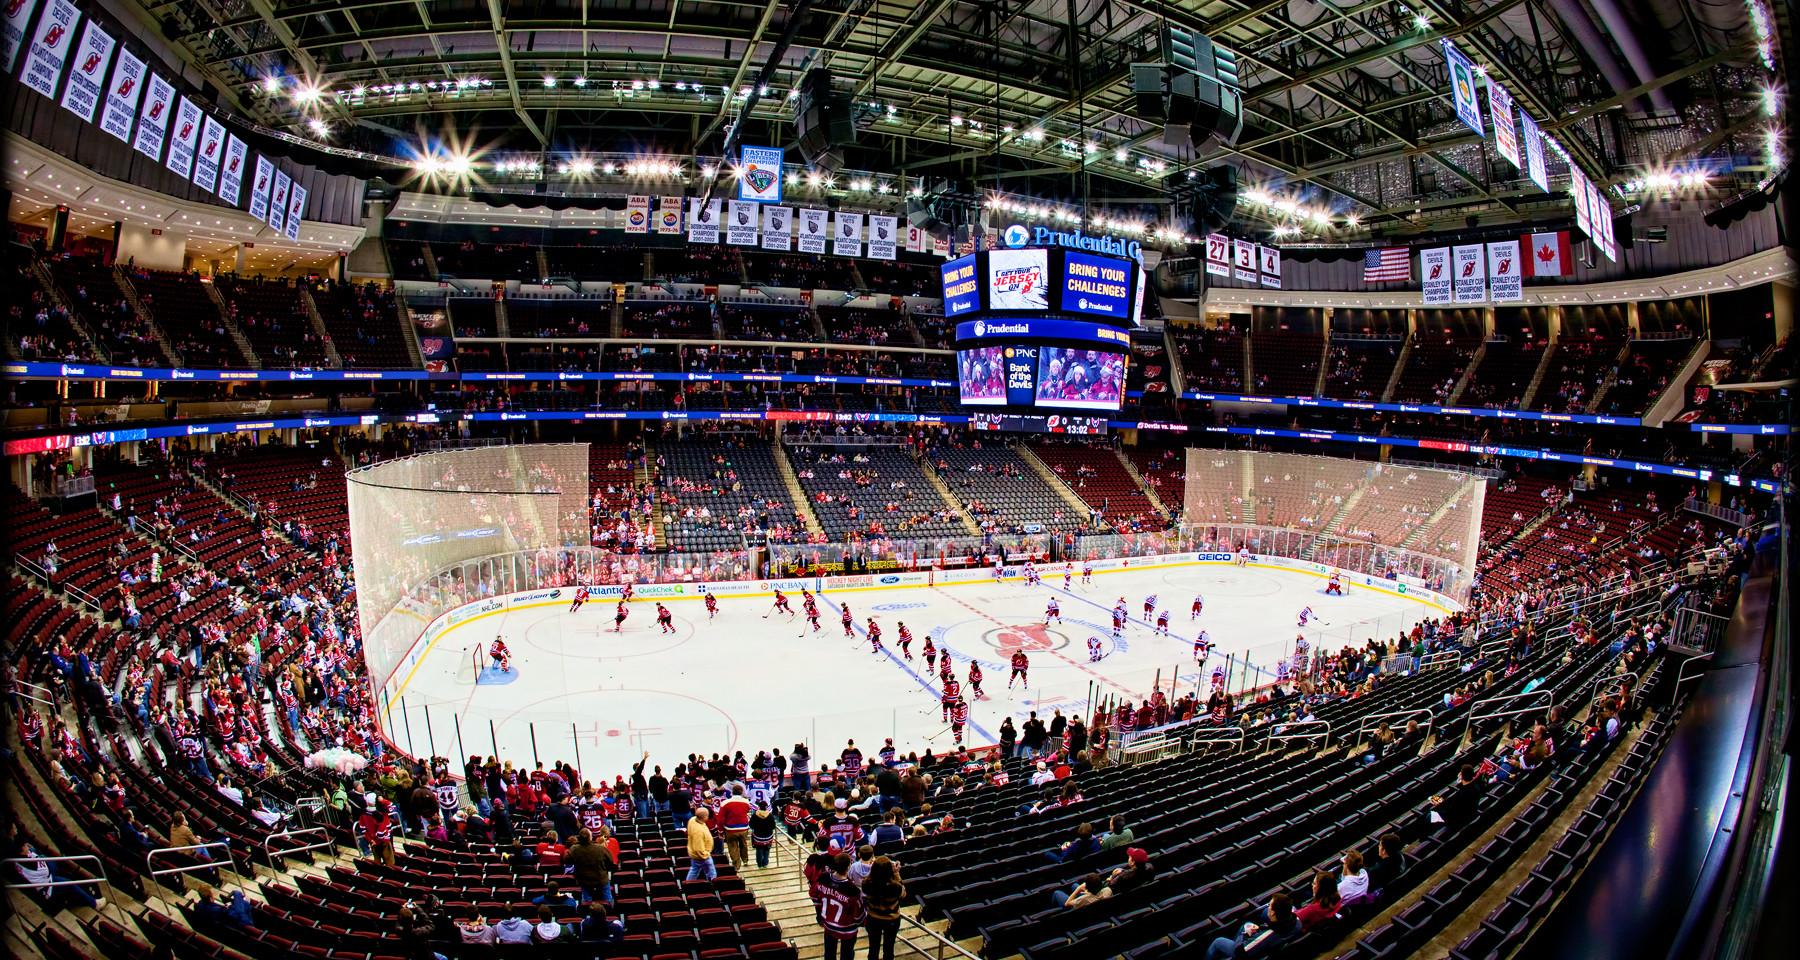 Prudential Center for the New Jersey Devils - Newark, NJ